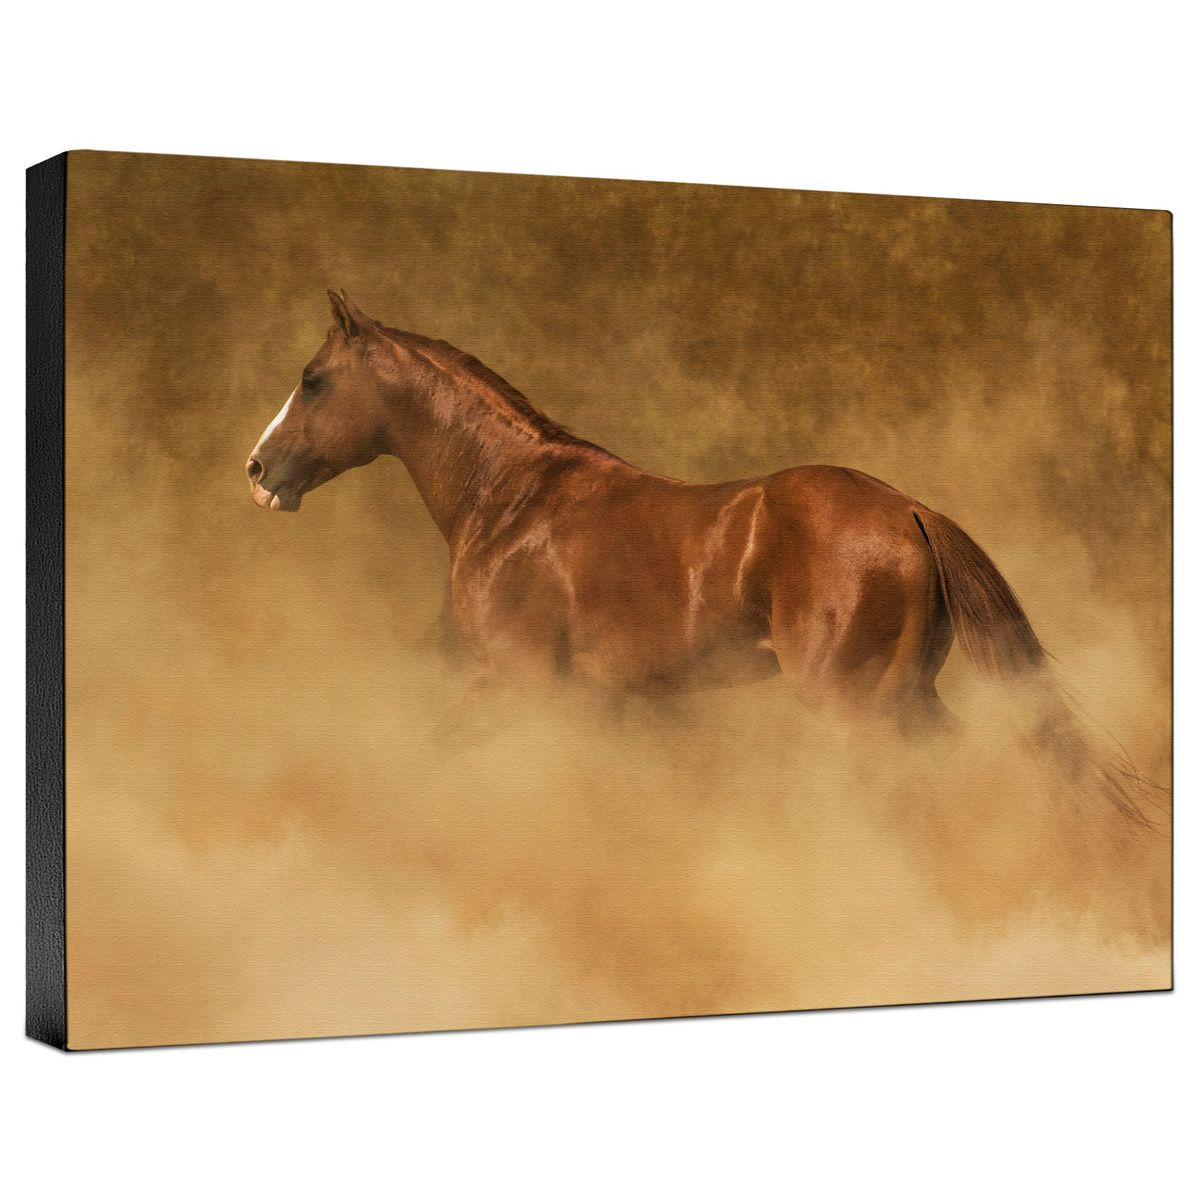 Out of the Dust Gallery Wrapped Canvas